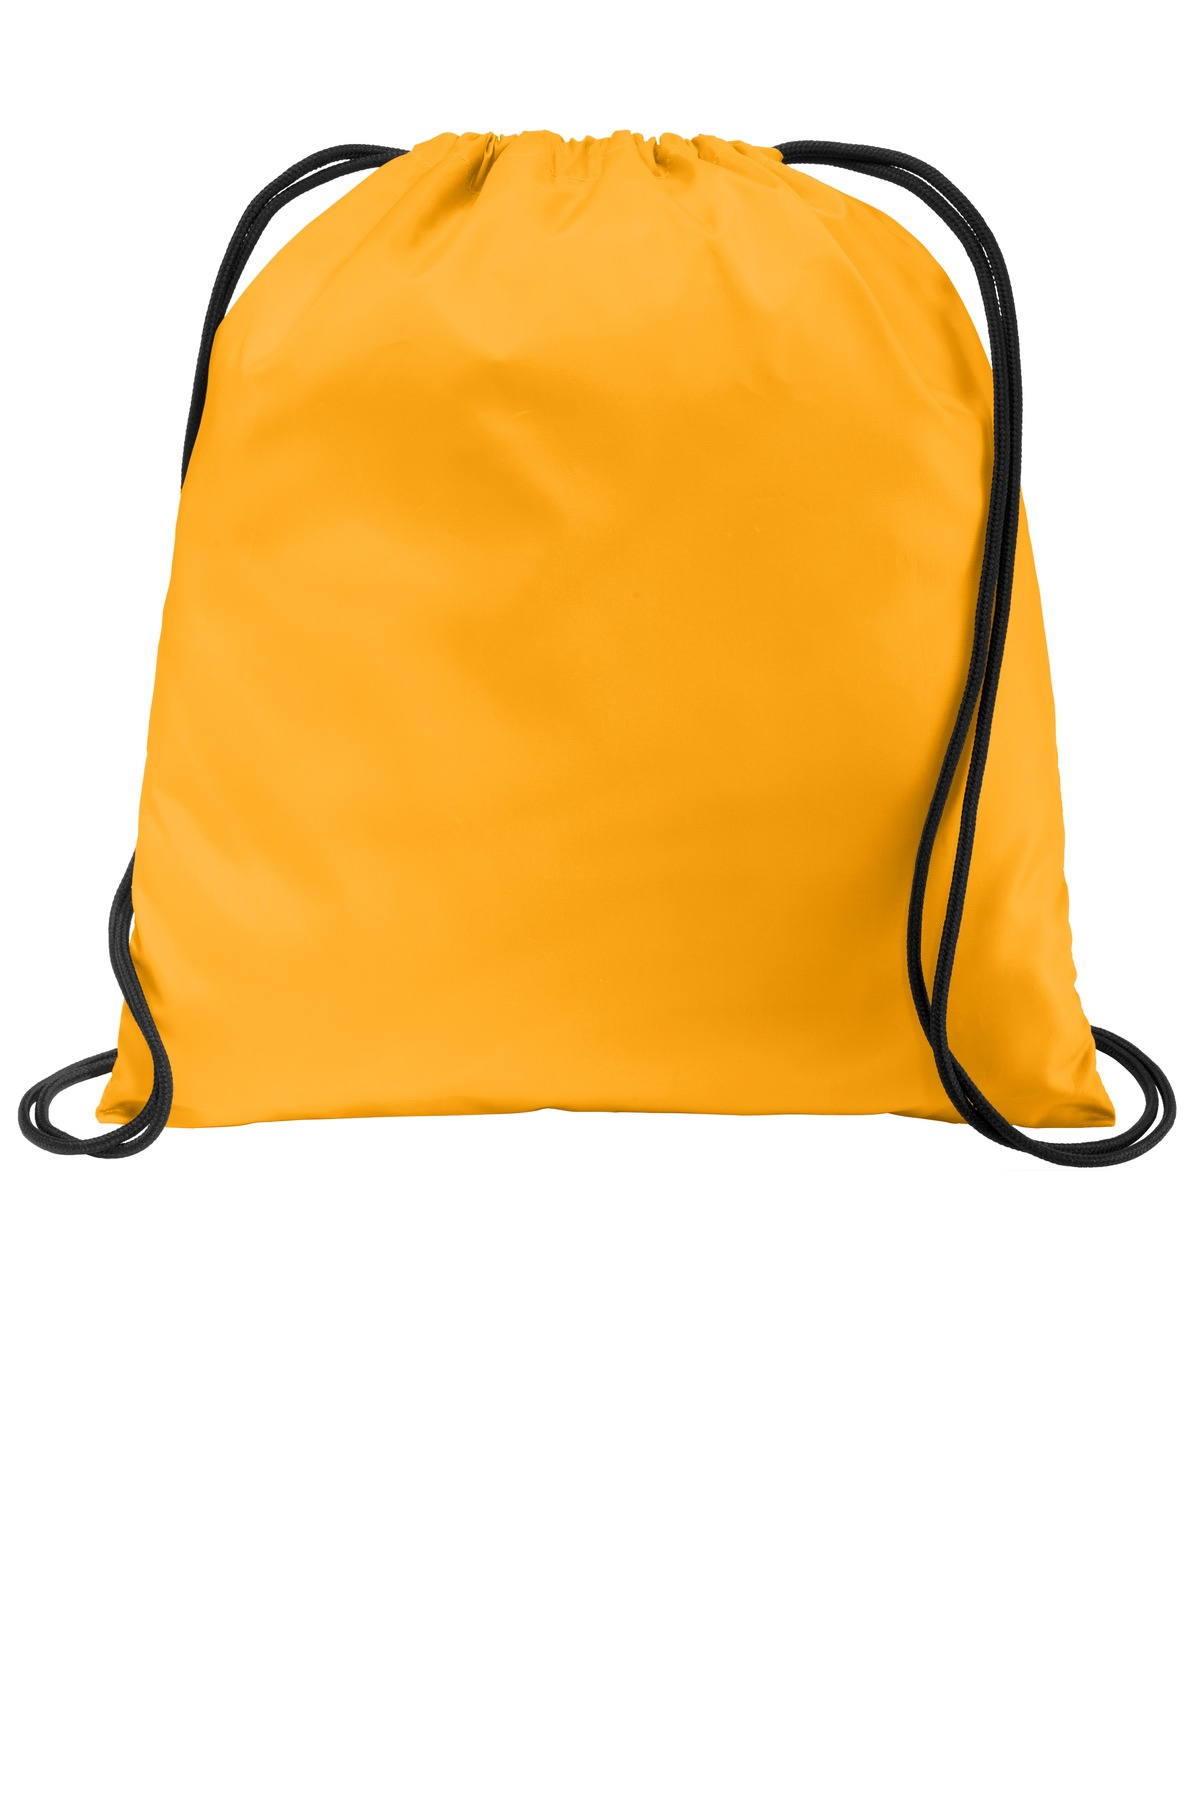 Port Authority ®  Ultra-Core Cinch Pack. BG615 - Gold